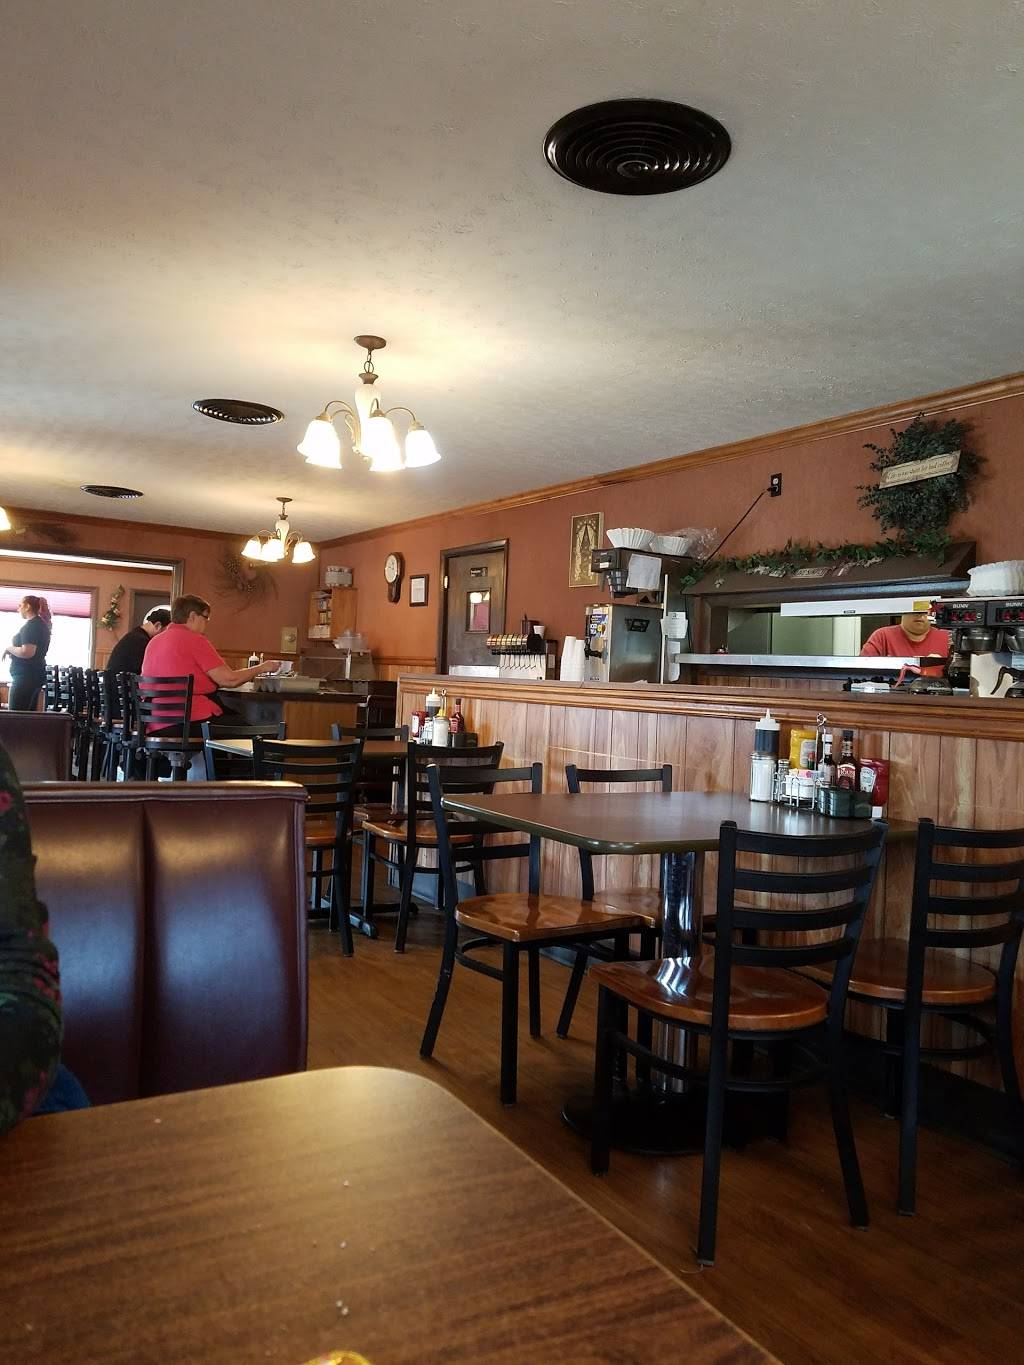 Home Style Family Restaurant | restaurant | 26 N Antrim Way, Greencastle, PA 17225, USA | 7175974243 OR +1 717-597-4243